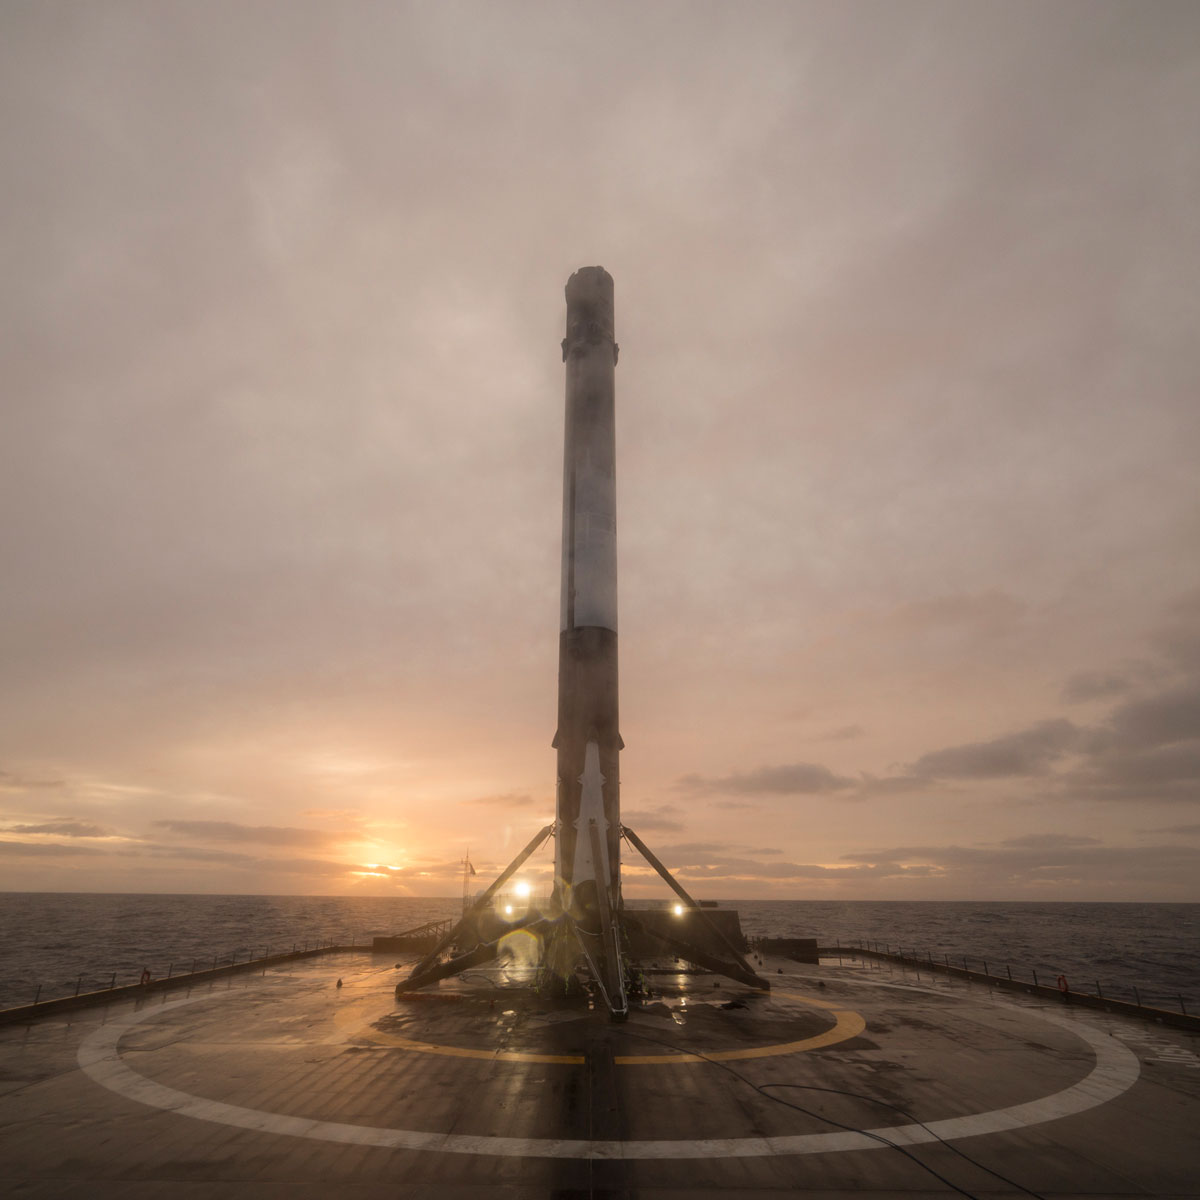 spacex launch and land january 2017 14 14 Amazing HQ Photos from SpaceXs Successful Launch and Landing